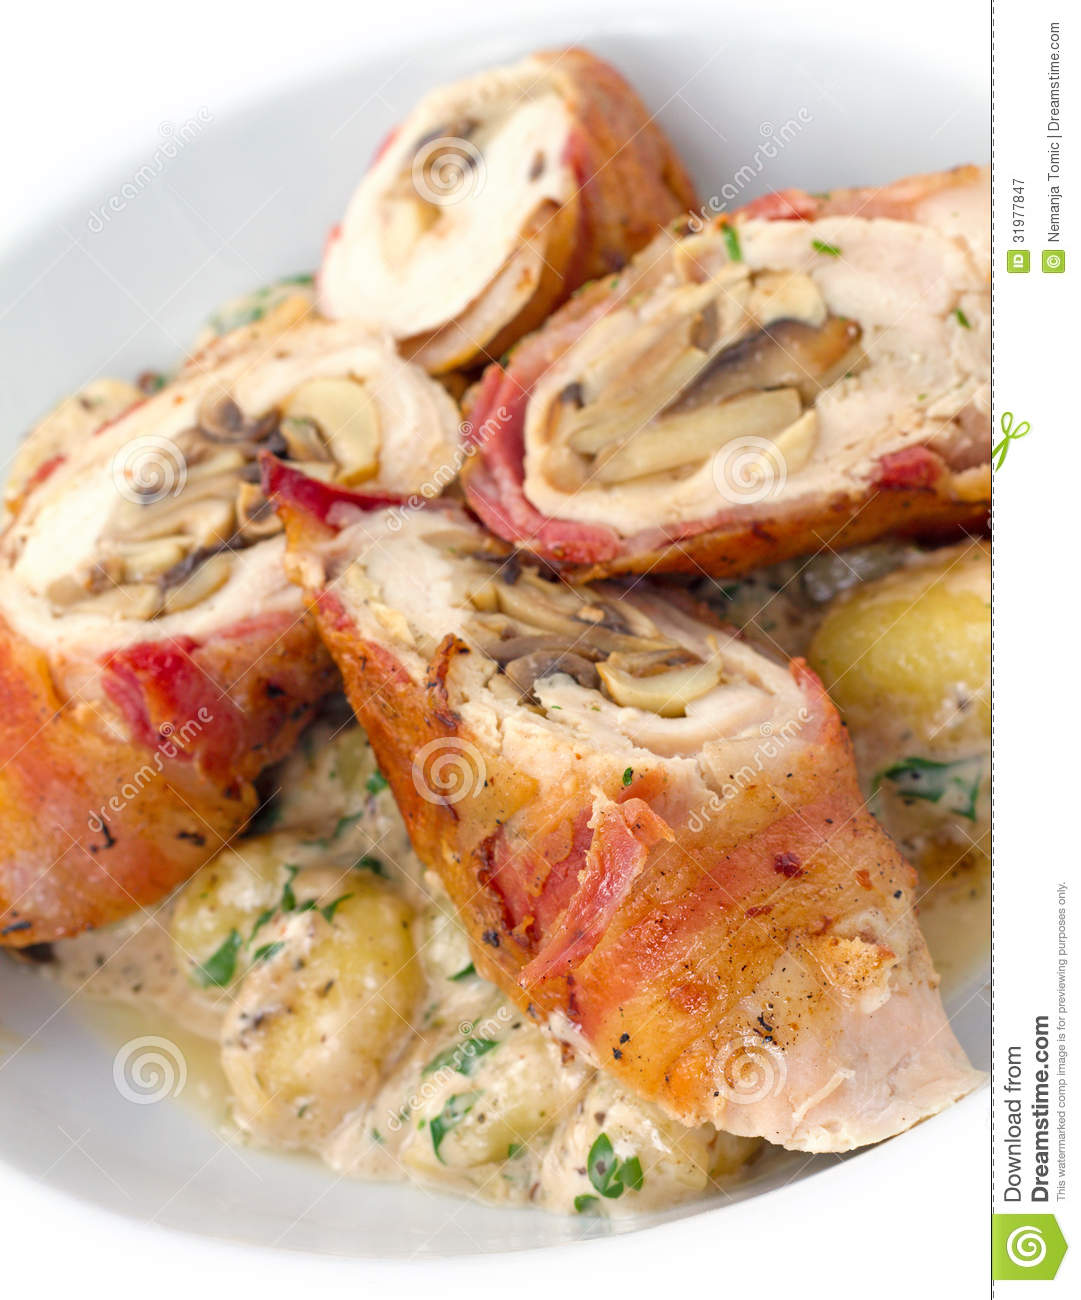 Chicken Bacon Roulades Recipes — Dishmaps